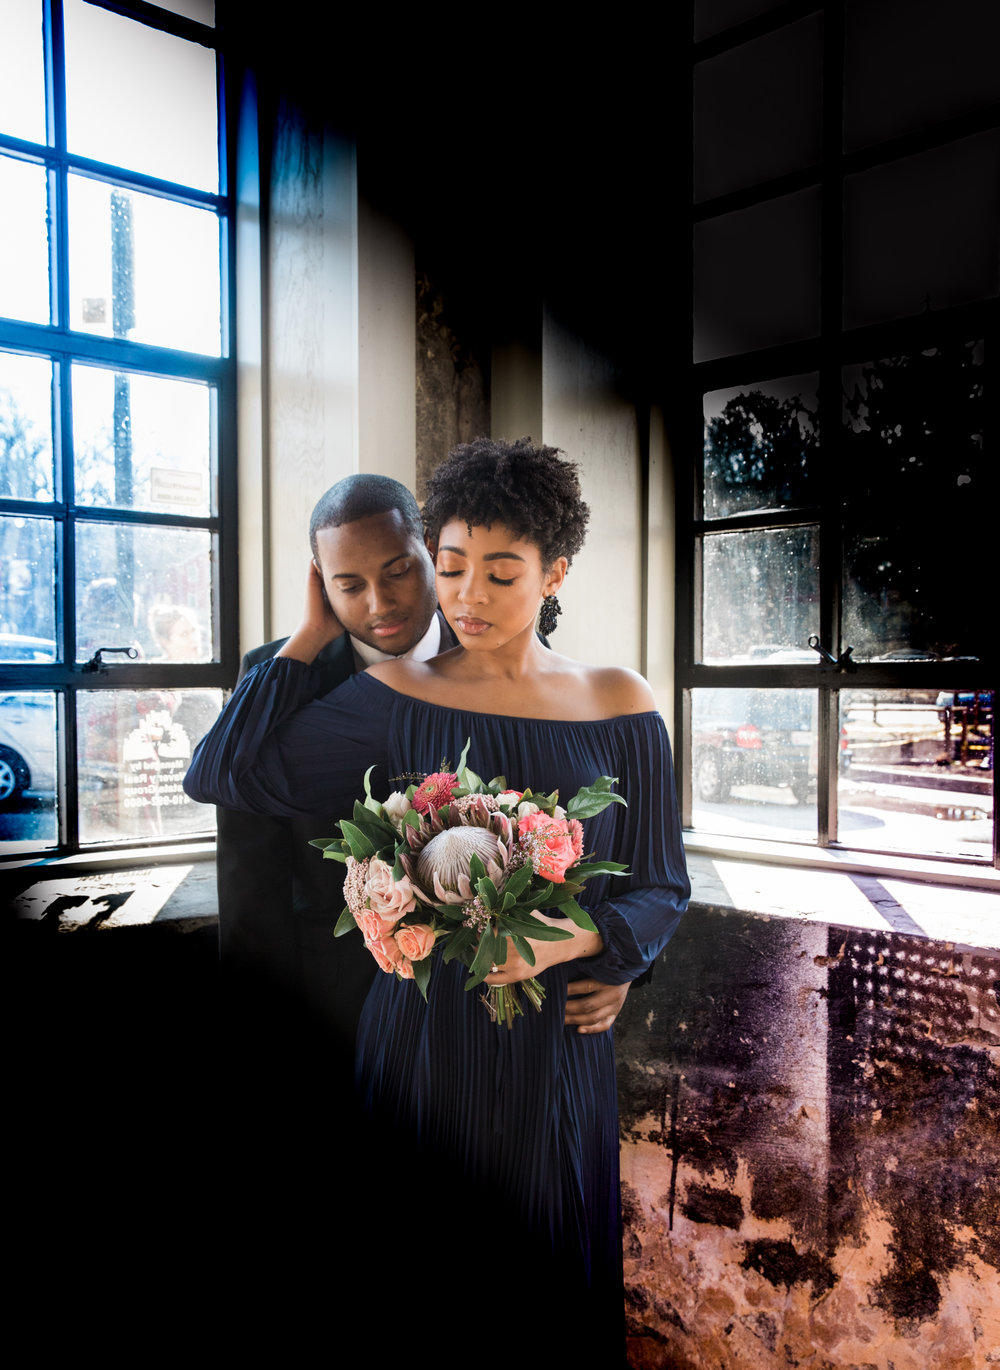 Natural Hair Black Bride in Baltimore Main Street Ballroom Engagement Session by Megapixels Media Photography-20.jpg